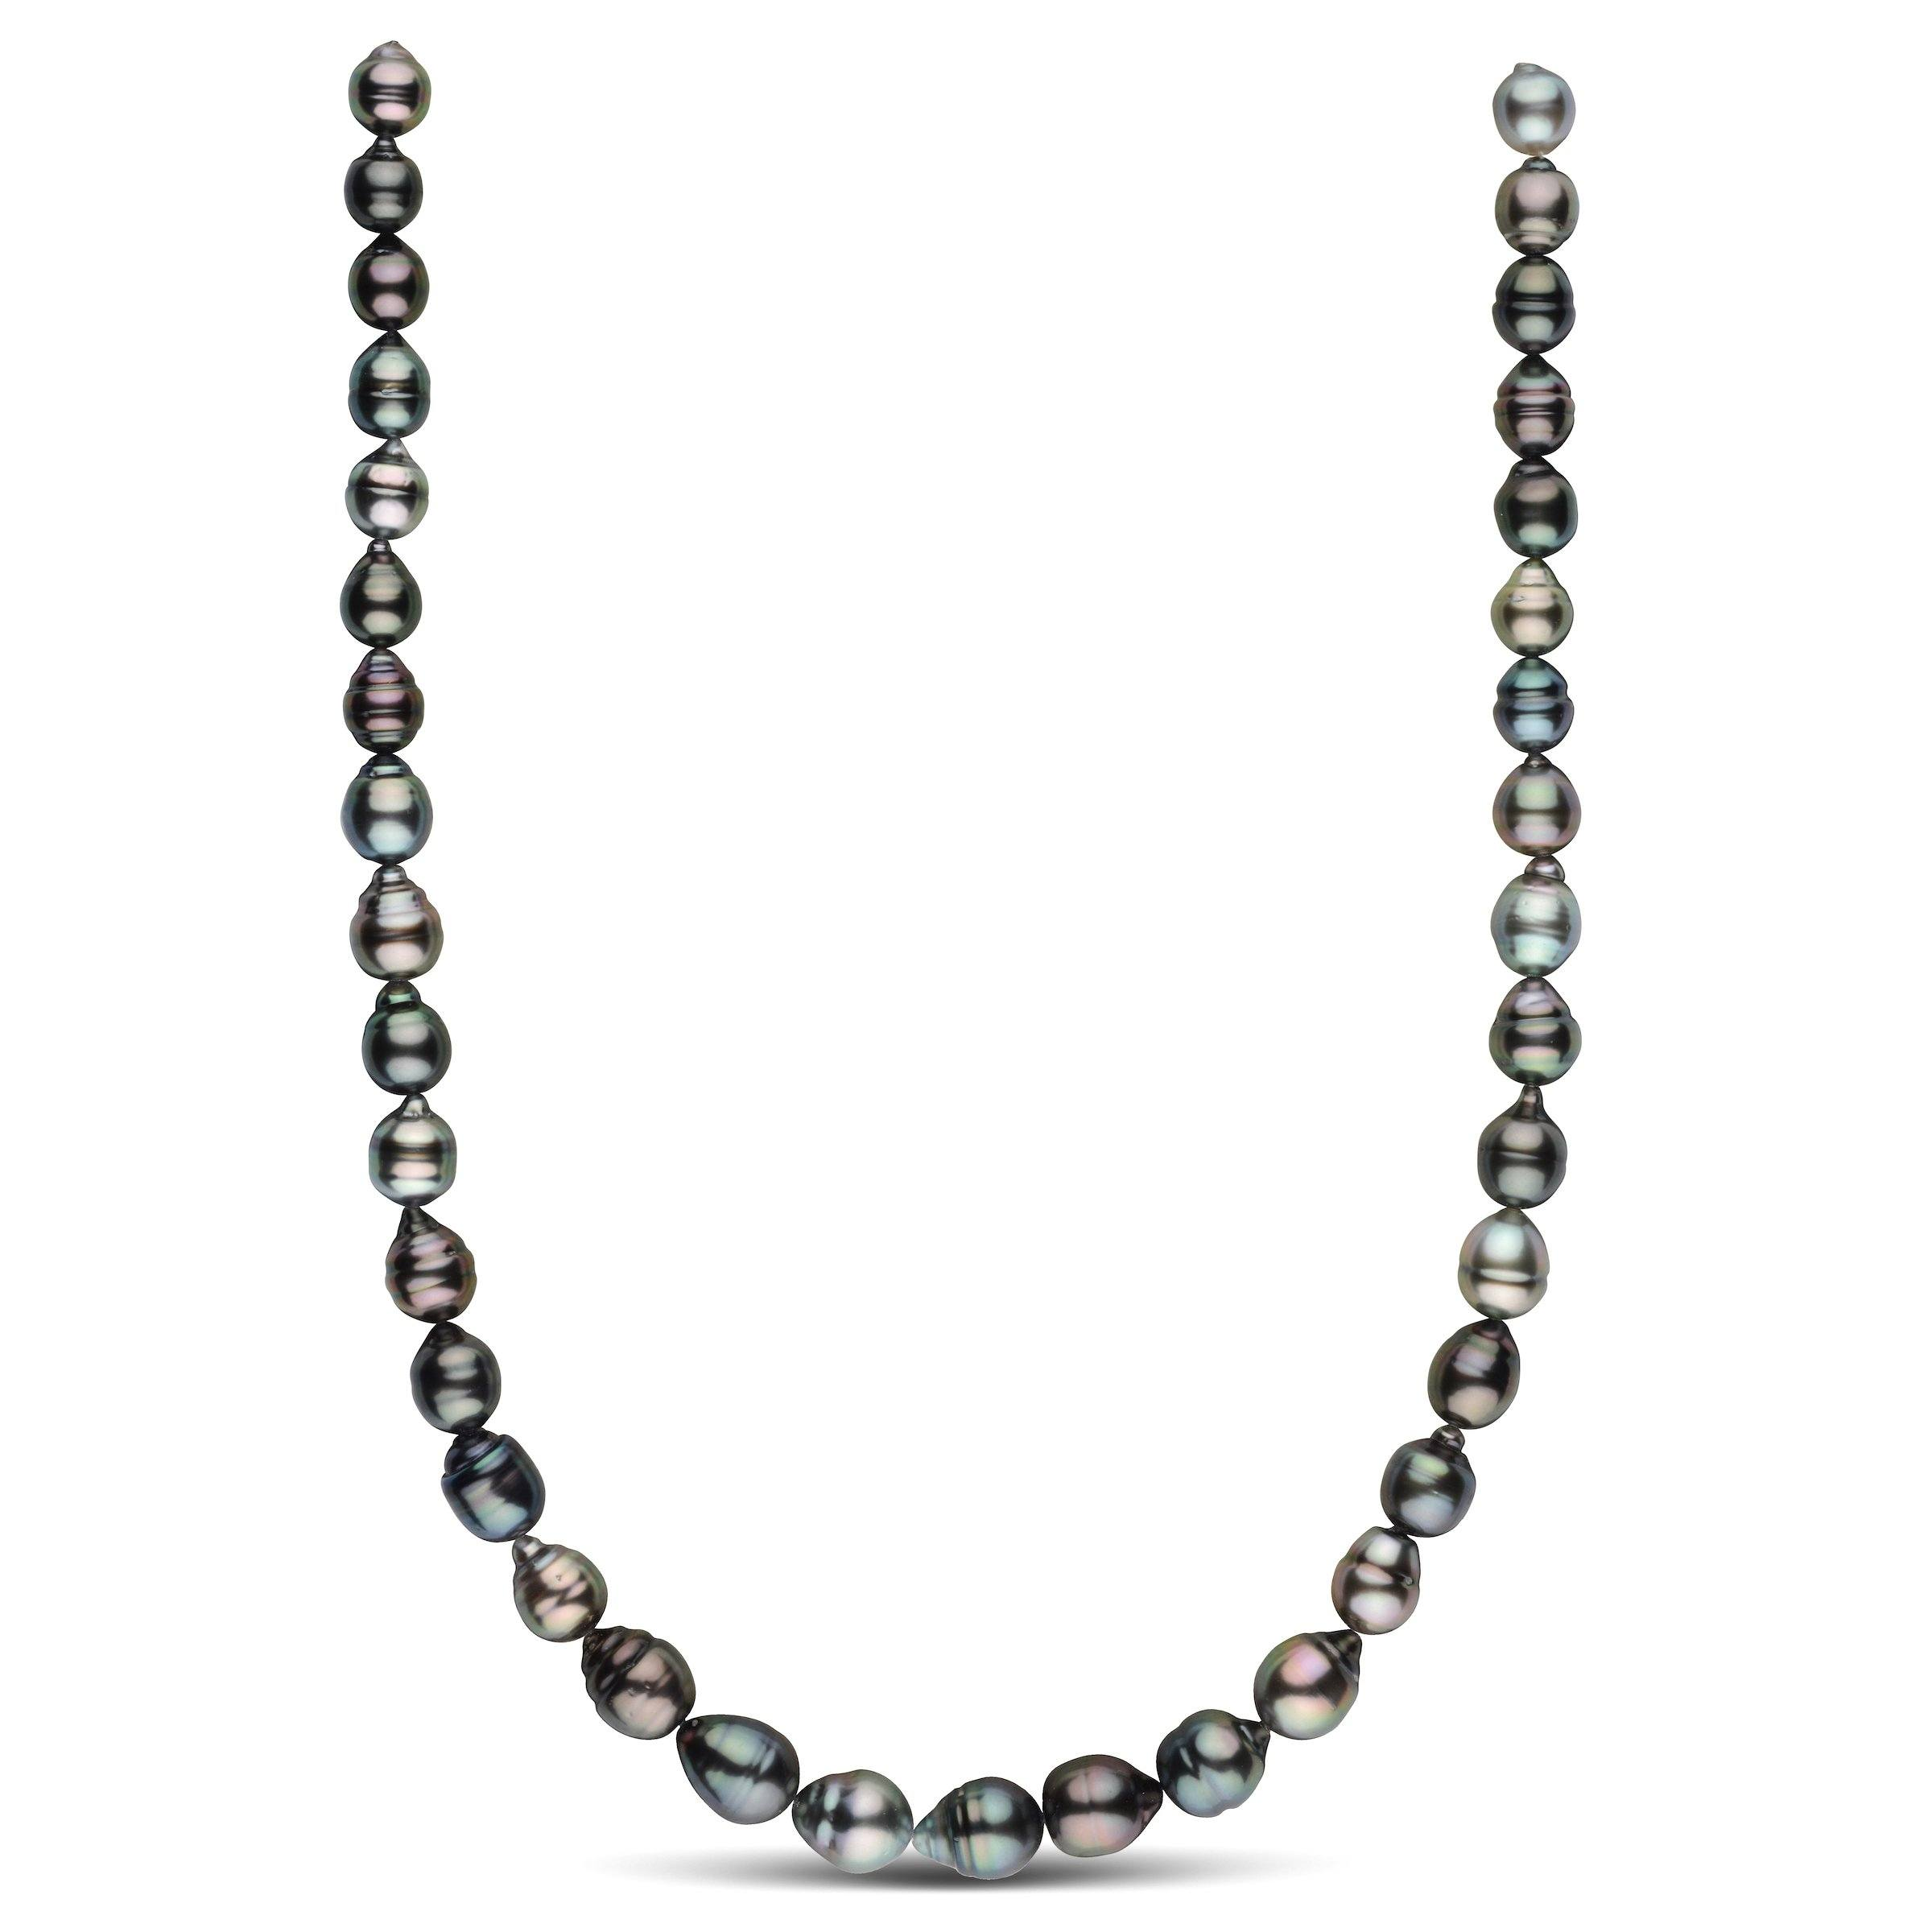 8.8-10.8 mm AAA Tahitian Baroque Pearl Necklace